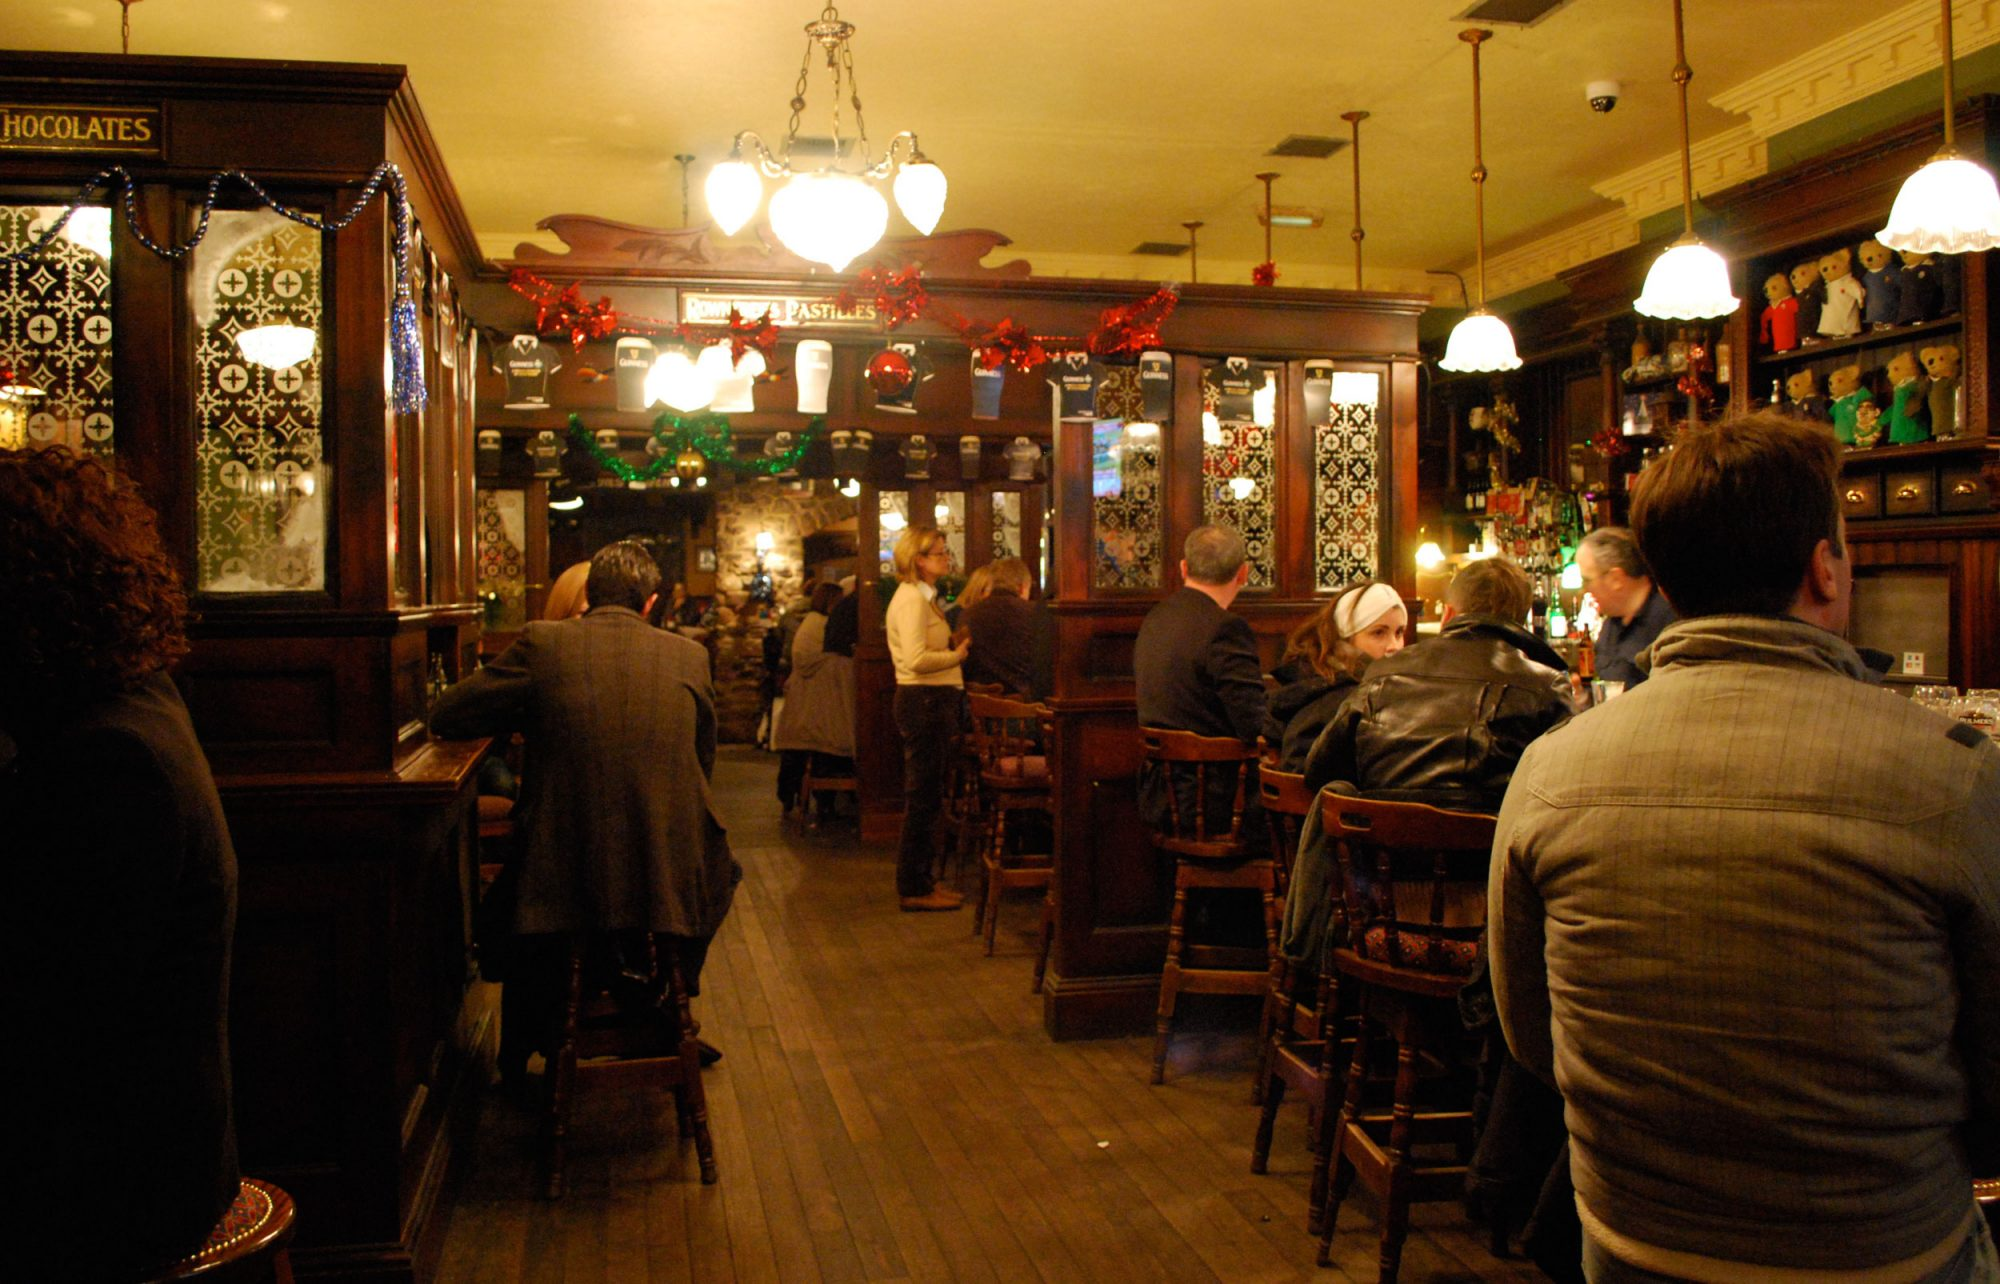 EC: Where You Can Get a Pint at 7 a.m. in Dublin